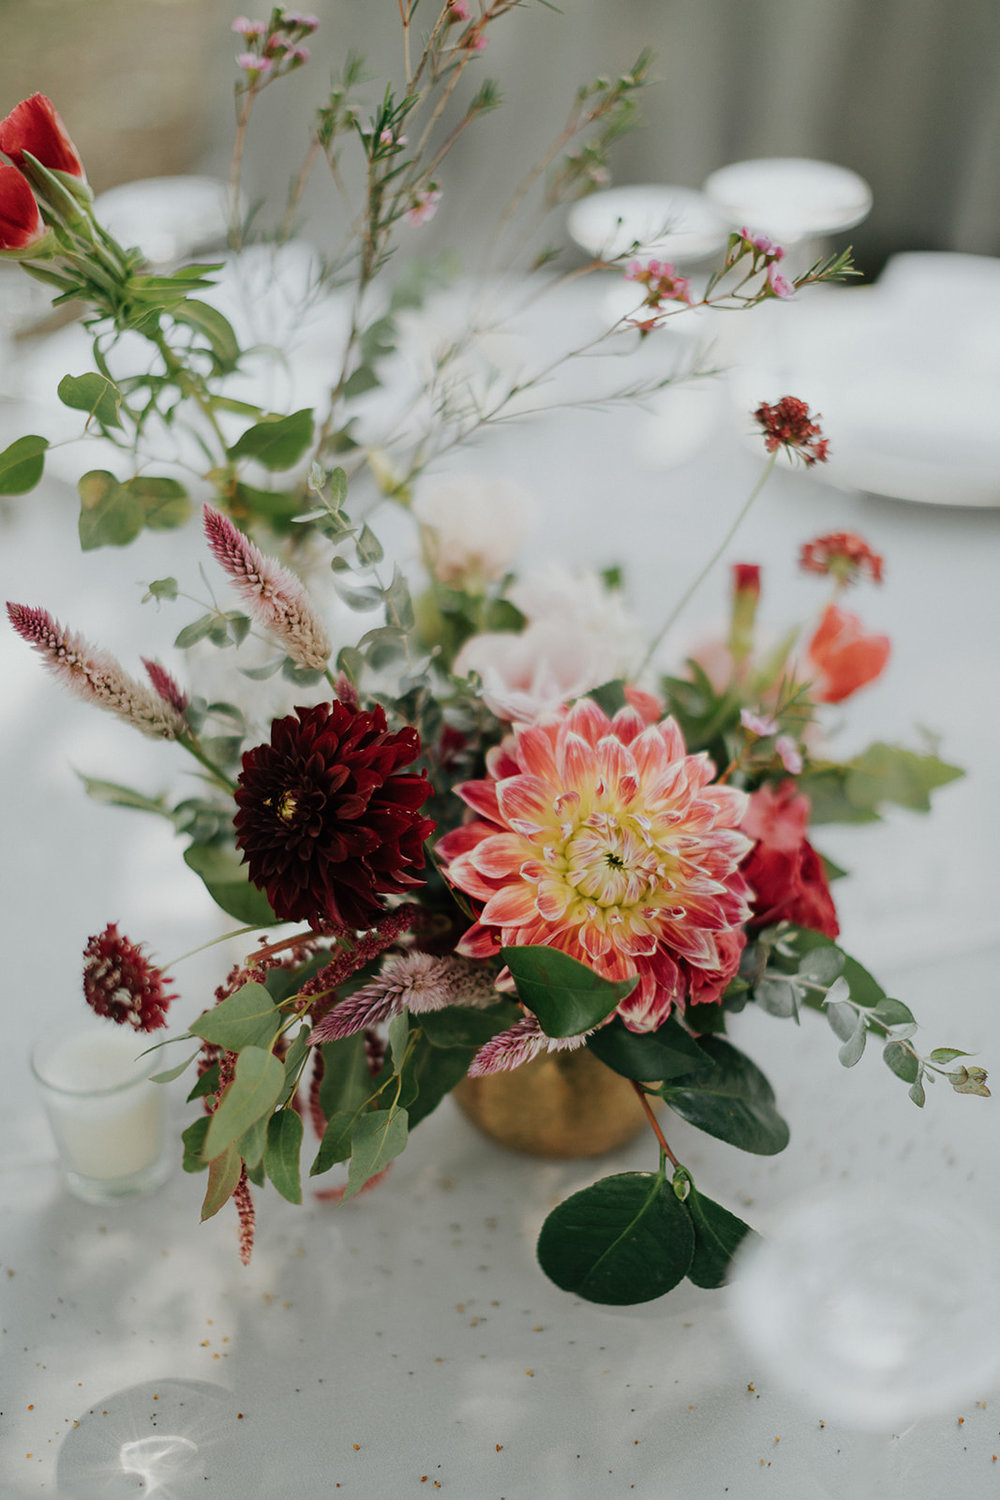 Bright summertime centerpieces with dahlias, scabiosa, godetia and eucalyptus in hammered brass vases by Venn Floral at Ru's Farm in Healdsburg photographed by Logan Cole.